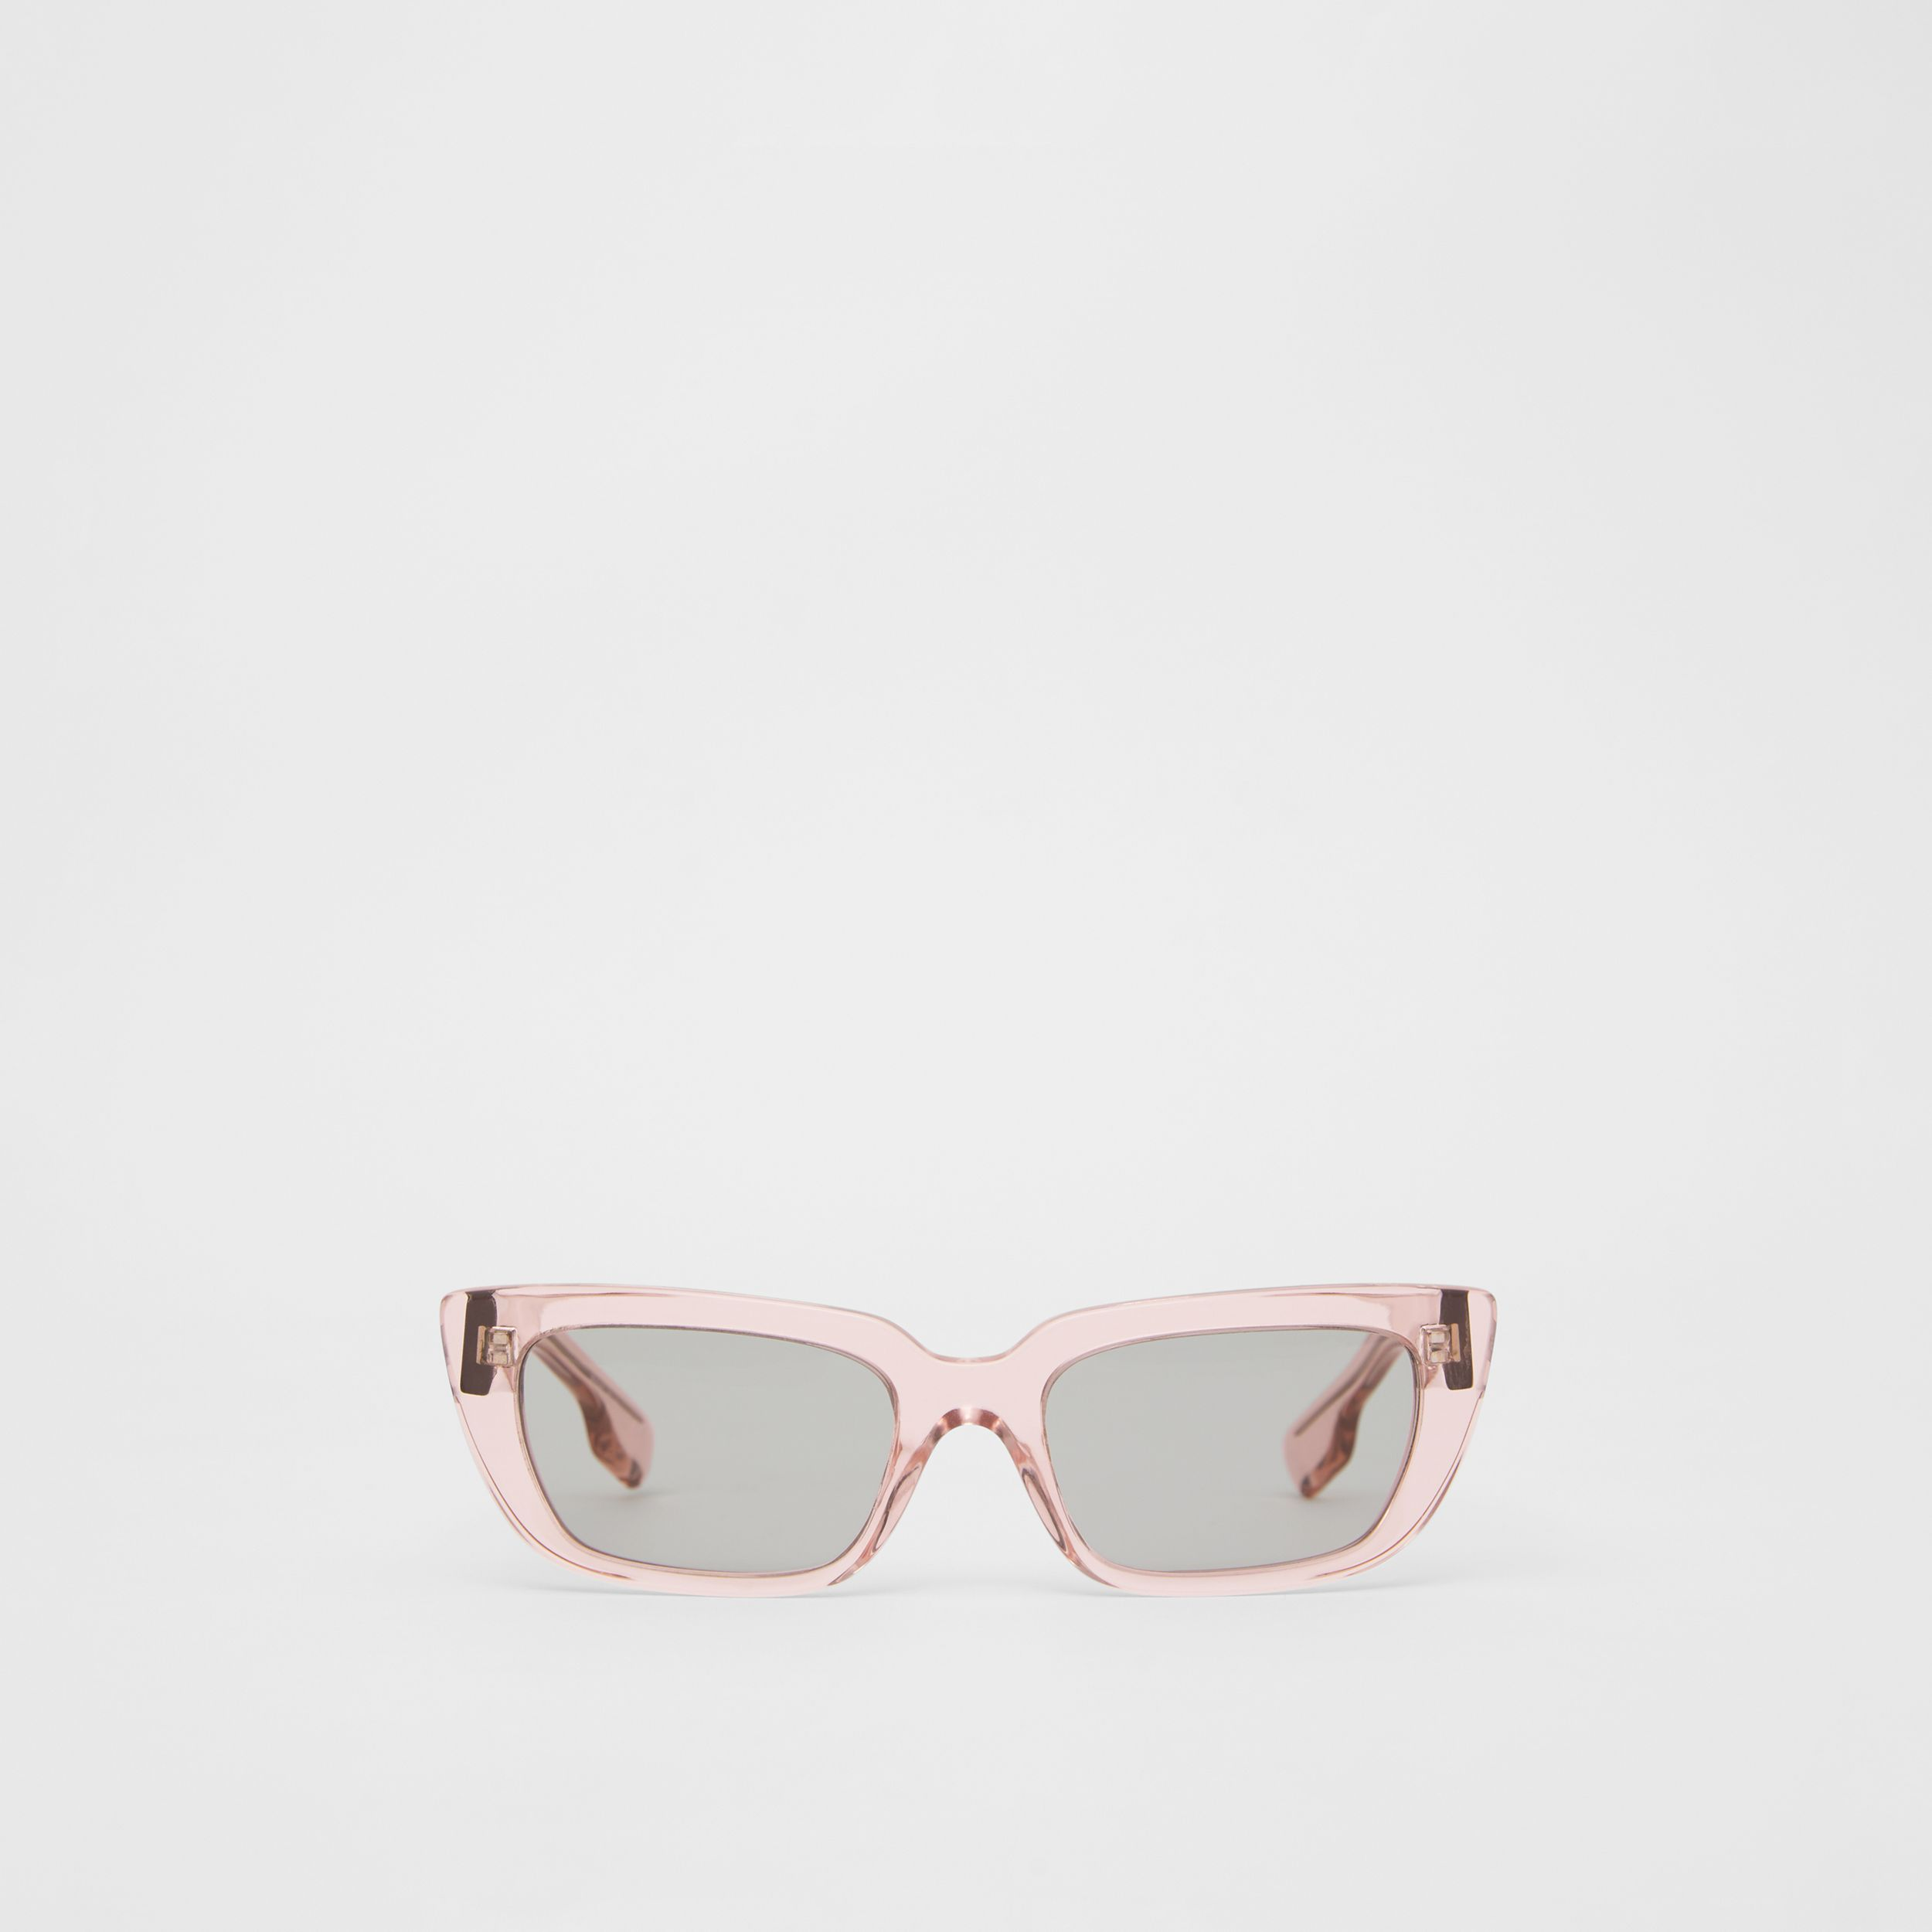 Bio-acetate Rectangular Frame Sunglasses in Light Pink - Women | Burberry - 1